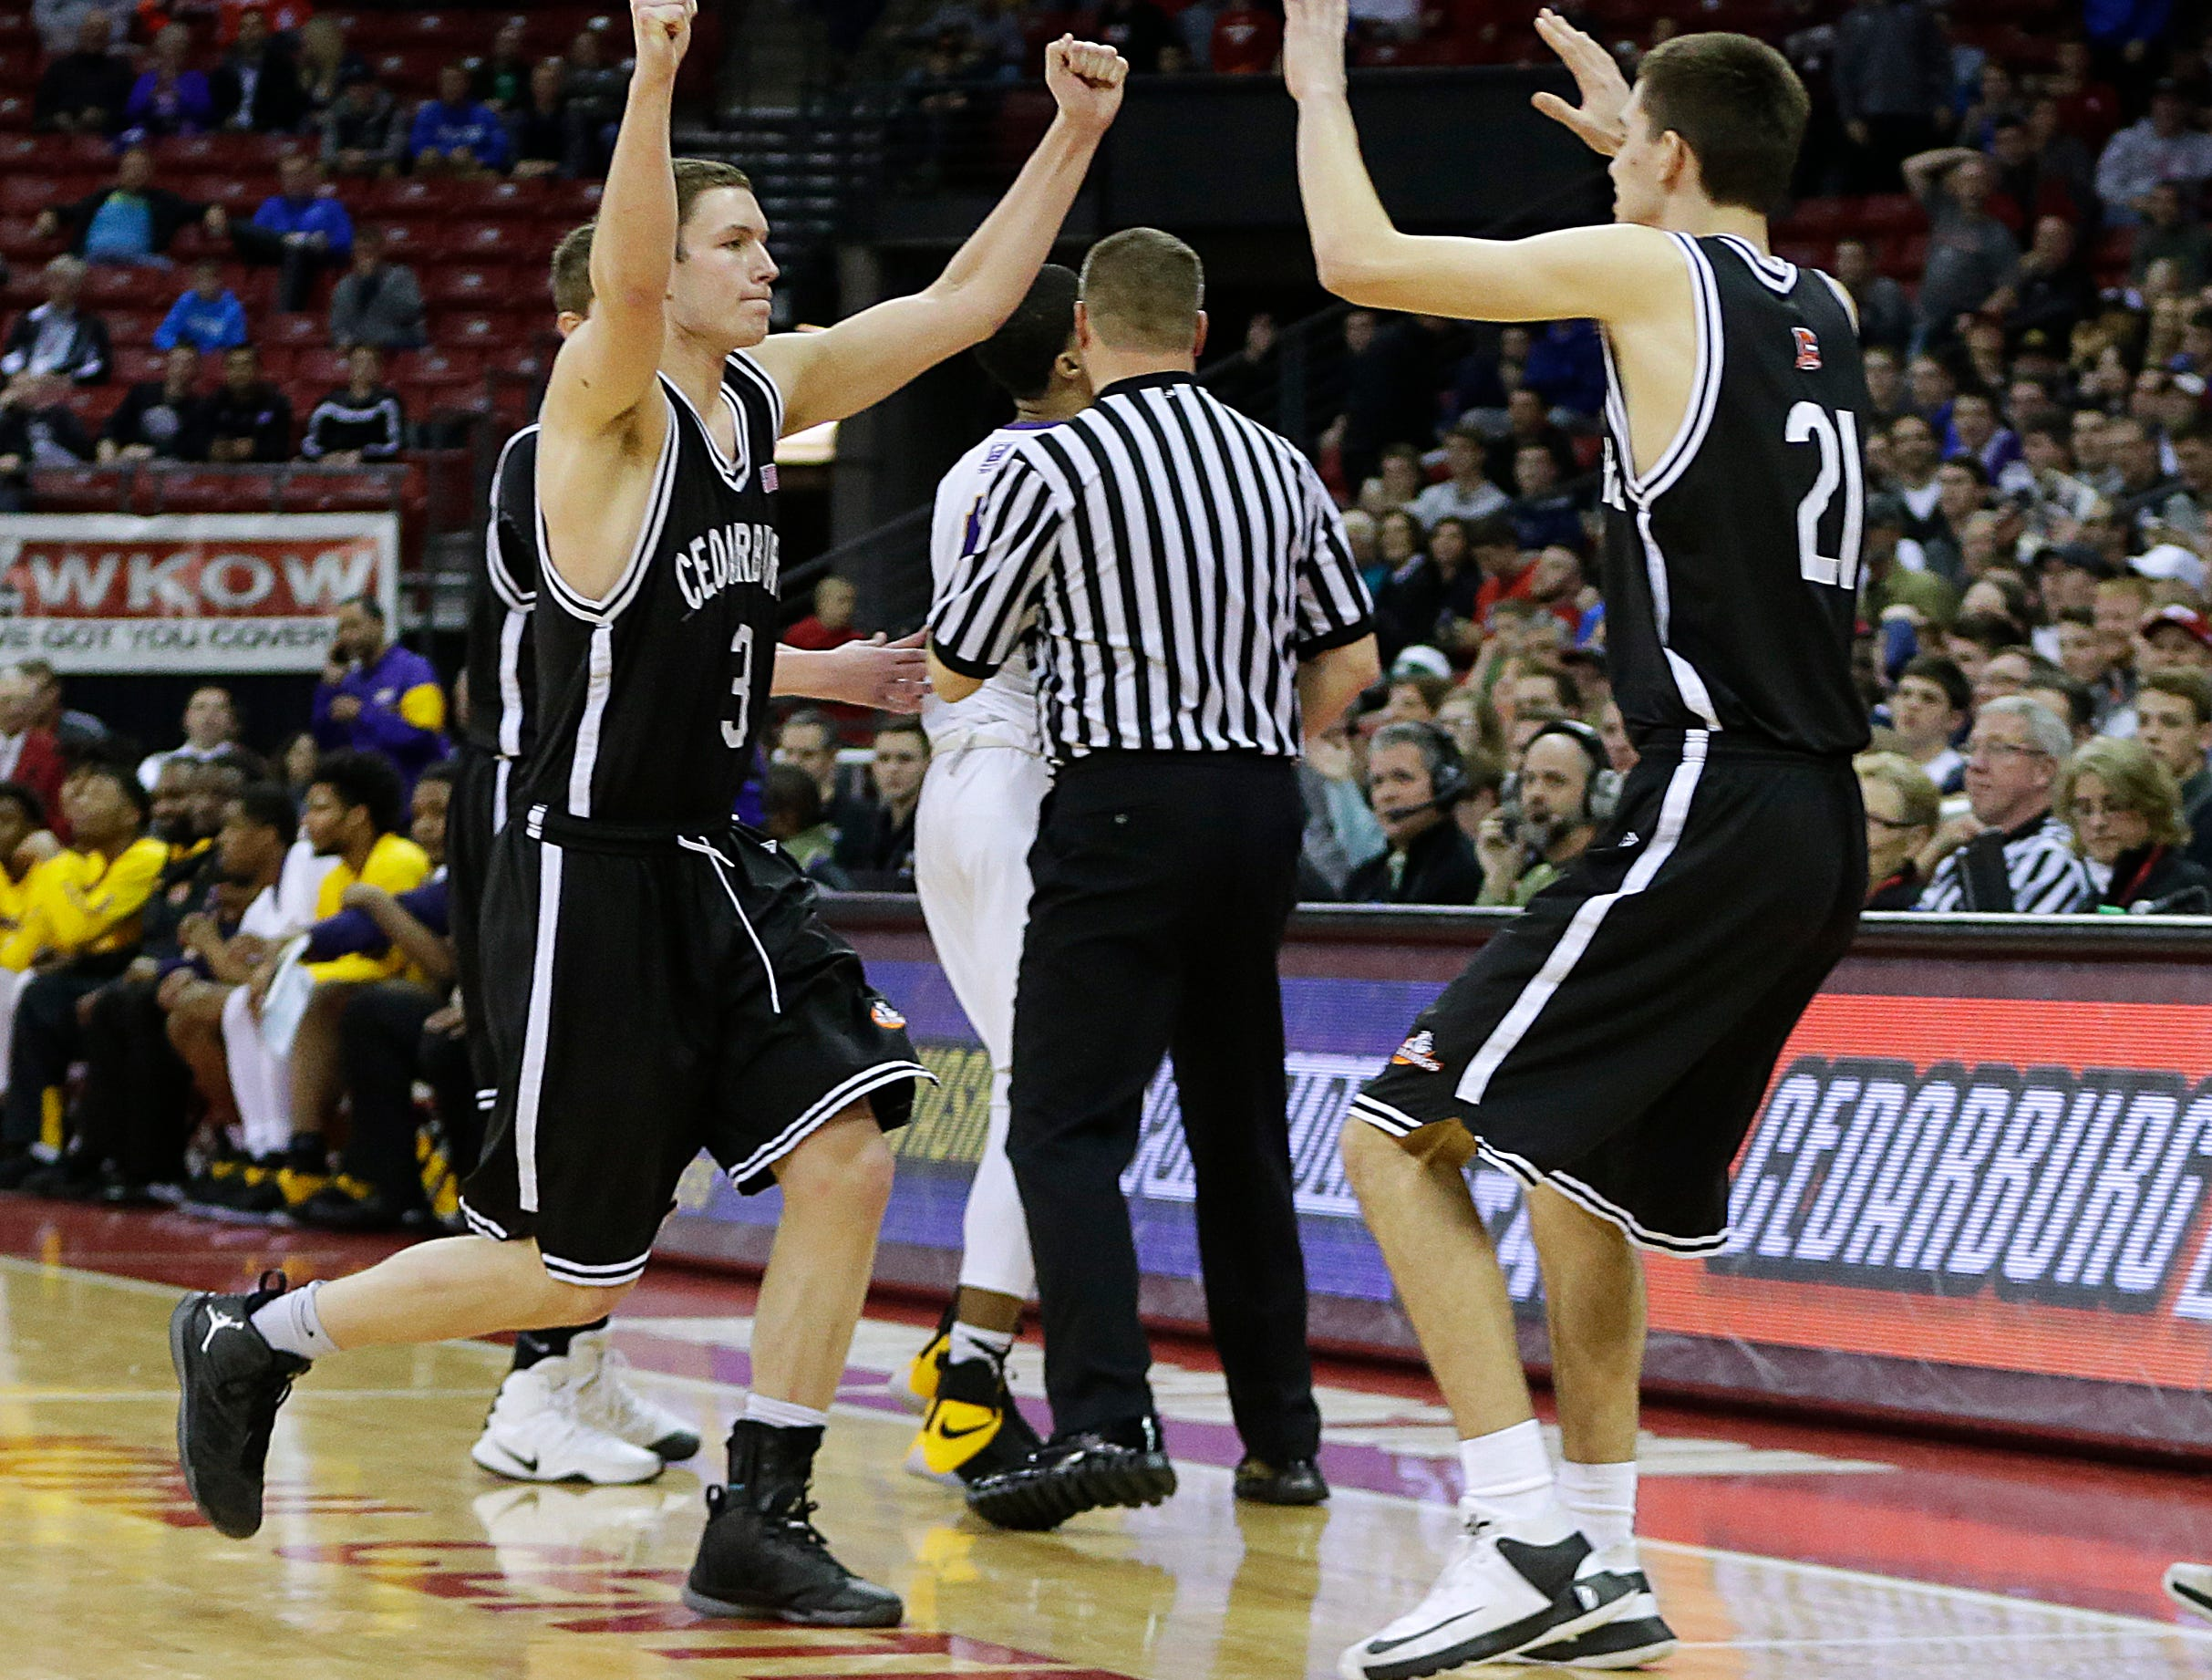 Cedarburg's  John Diener (3) celebrates with teammates including Matthew Barber (21)  after Cedarburg's 73-70  overtime victory over Milwaukee Washington. Diener set a state record scoring 46 points  during the Division 2 semifinal between Cedarburg and Milwaukee Washington at the WIAA boys' state basketball championships Friday, March 17, 2017, in Madison, Wis. (Milwaukee Journal Sentinel photo by Rick Wood/RWOOD@JOURNALSENTINEL.COM    ORG XMIT: 20091658A